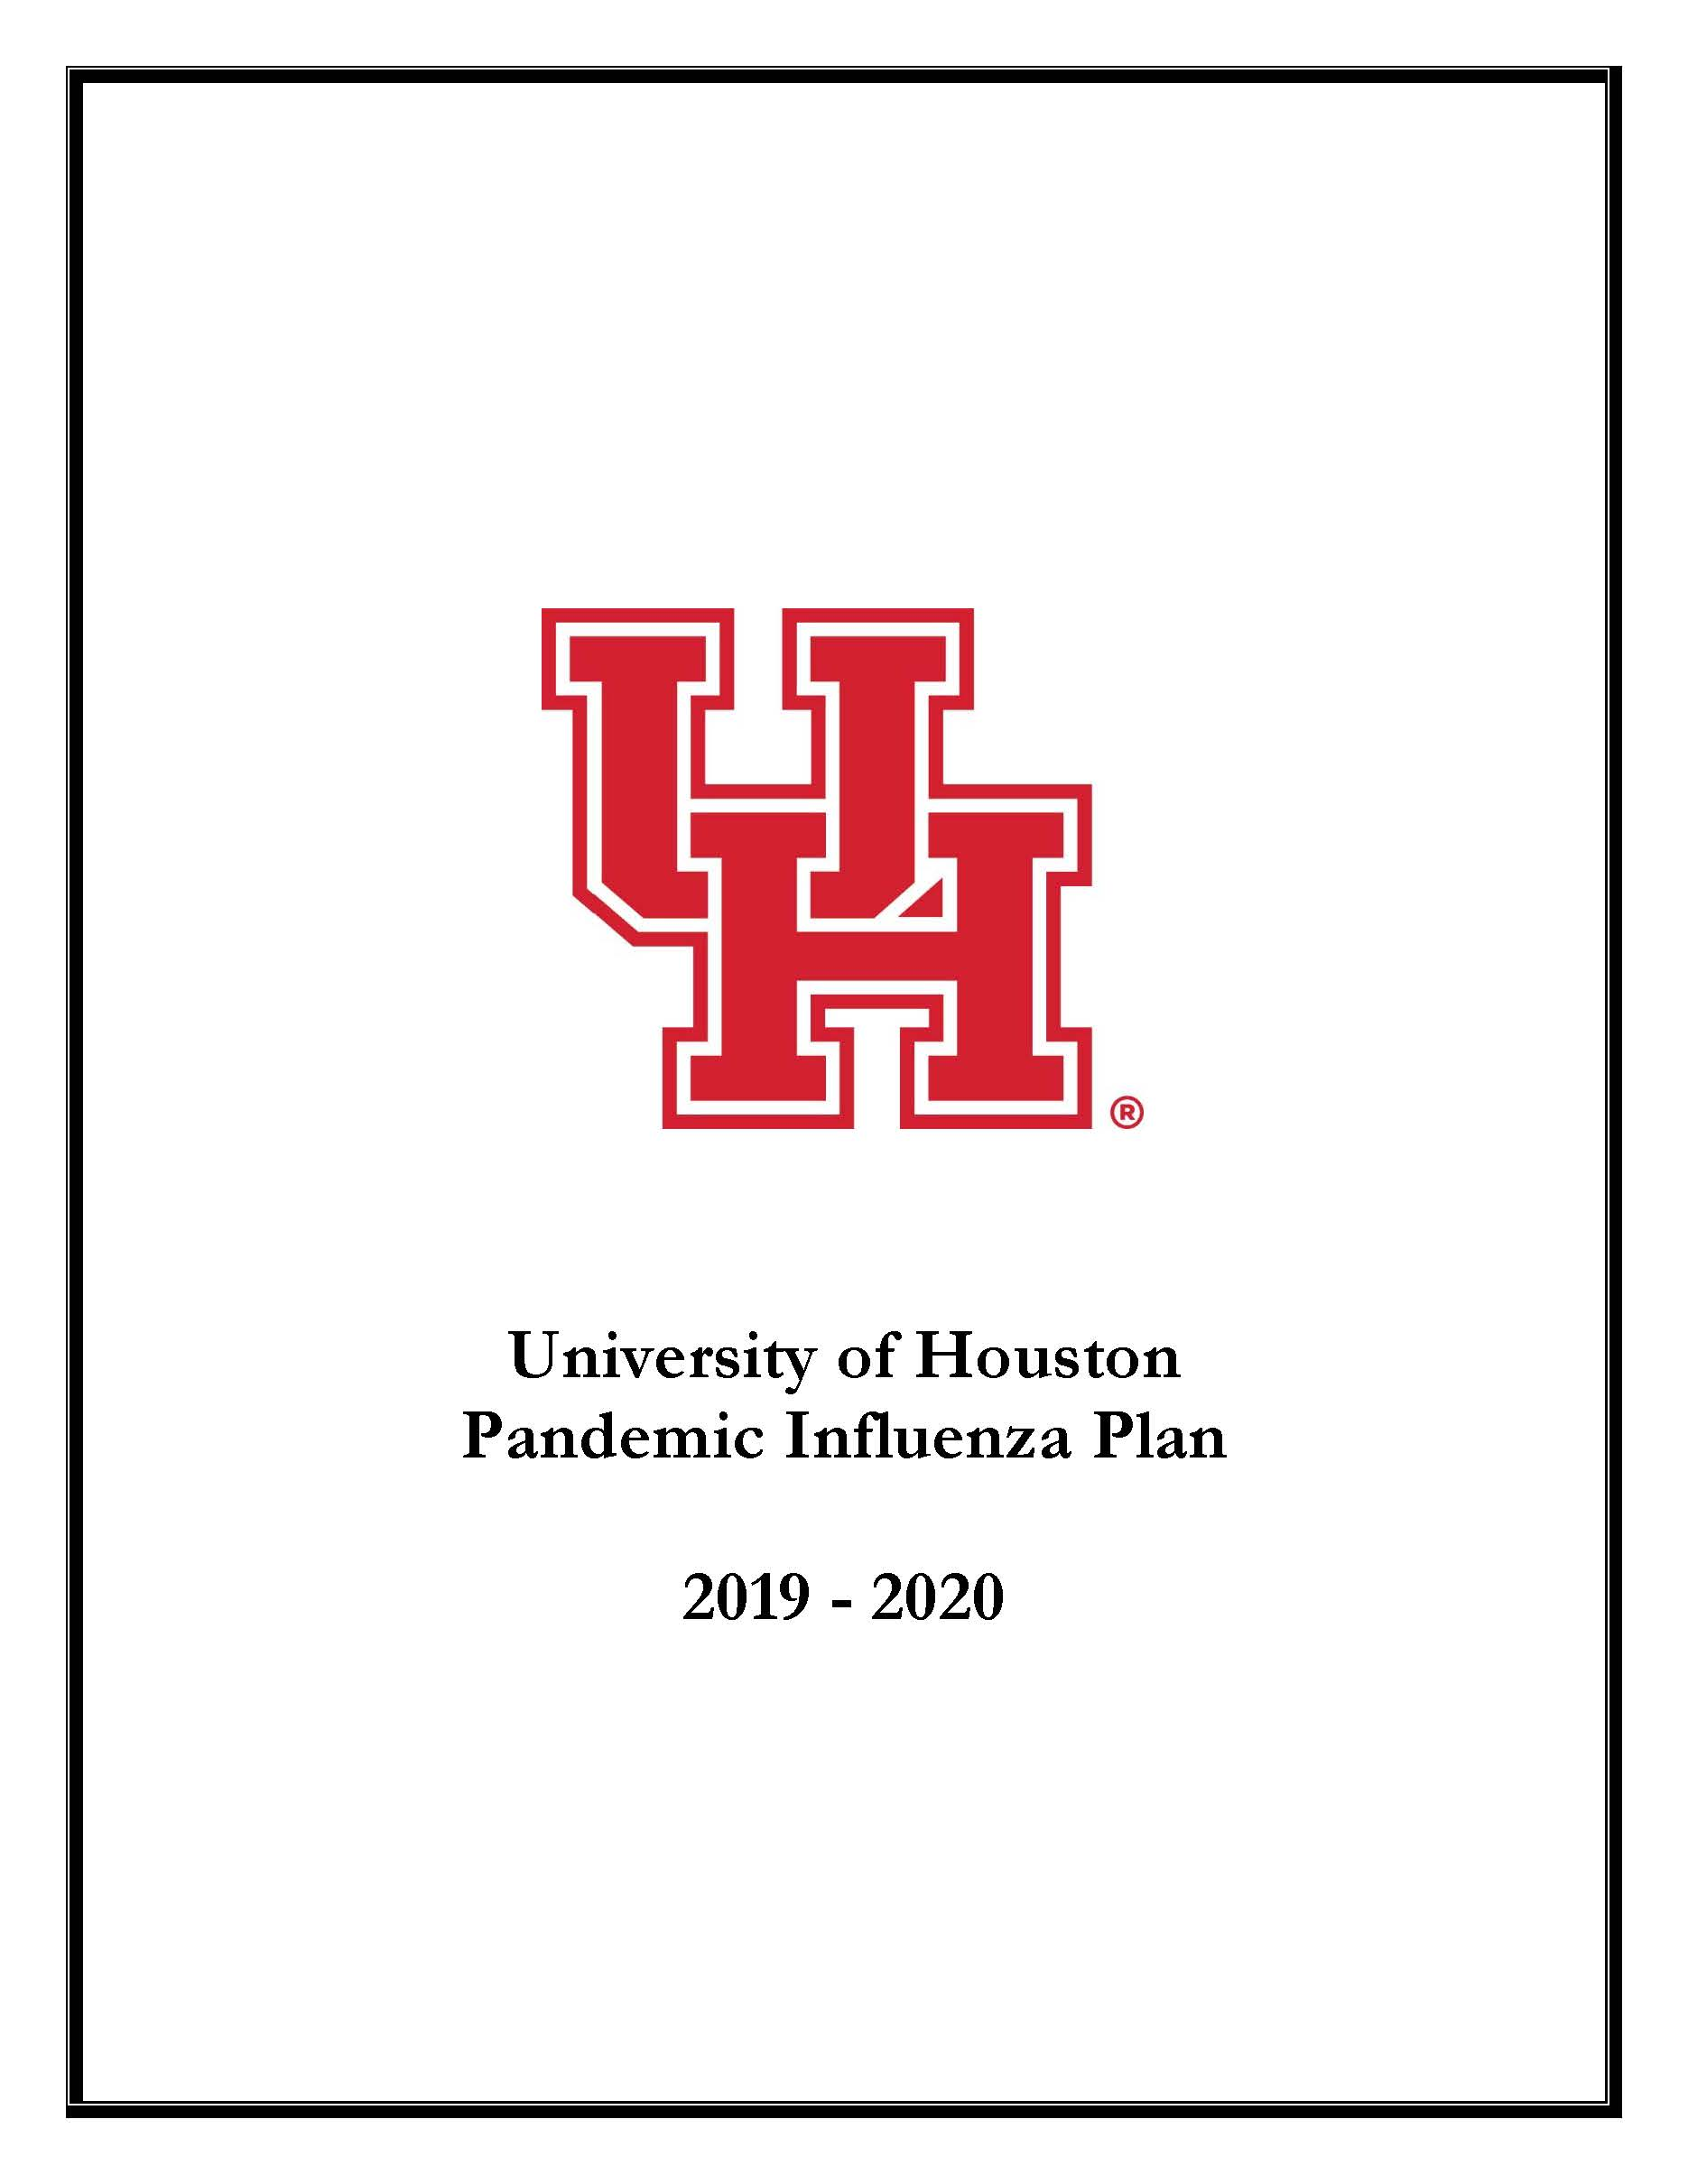 Emergency Management Plans - University of Houston